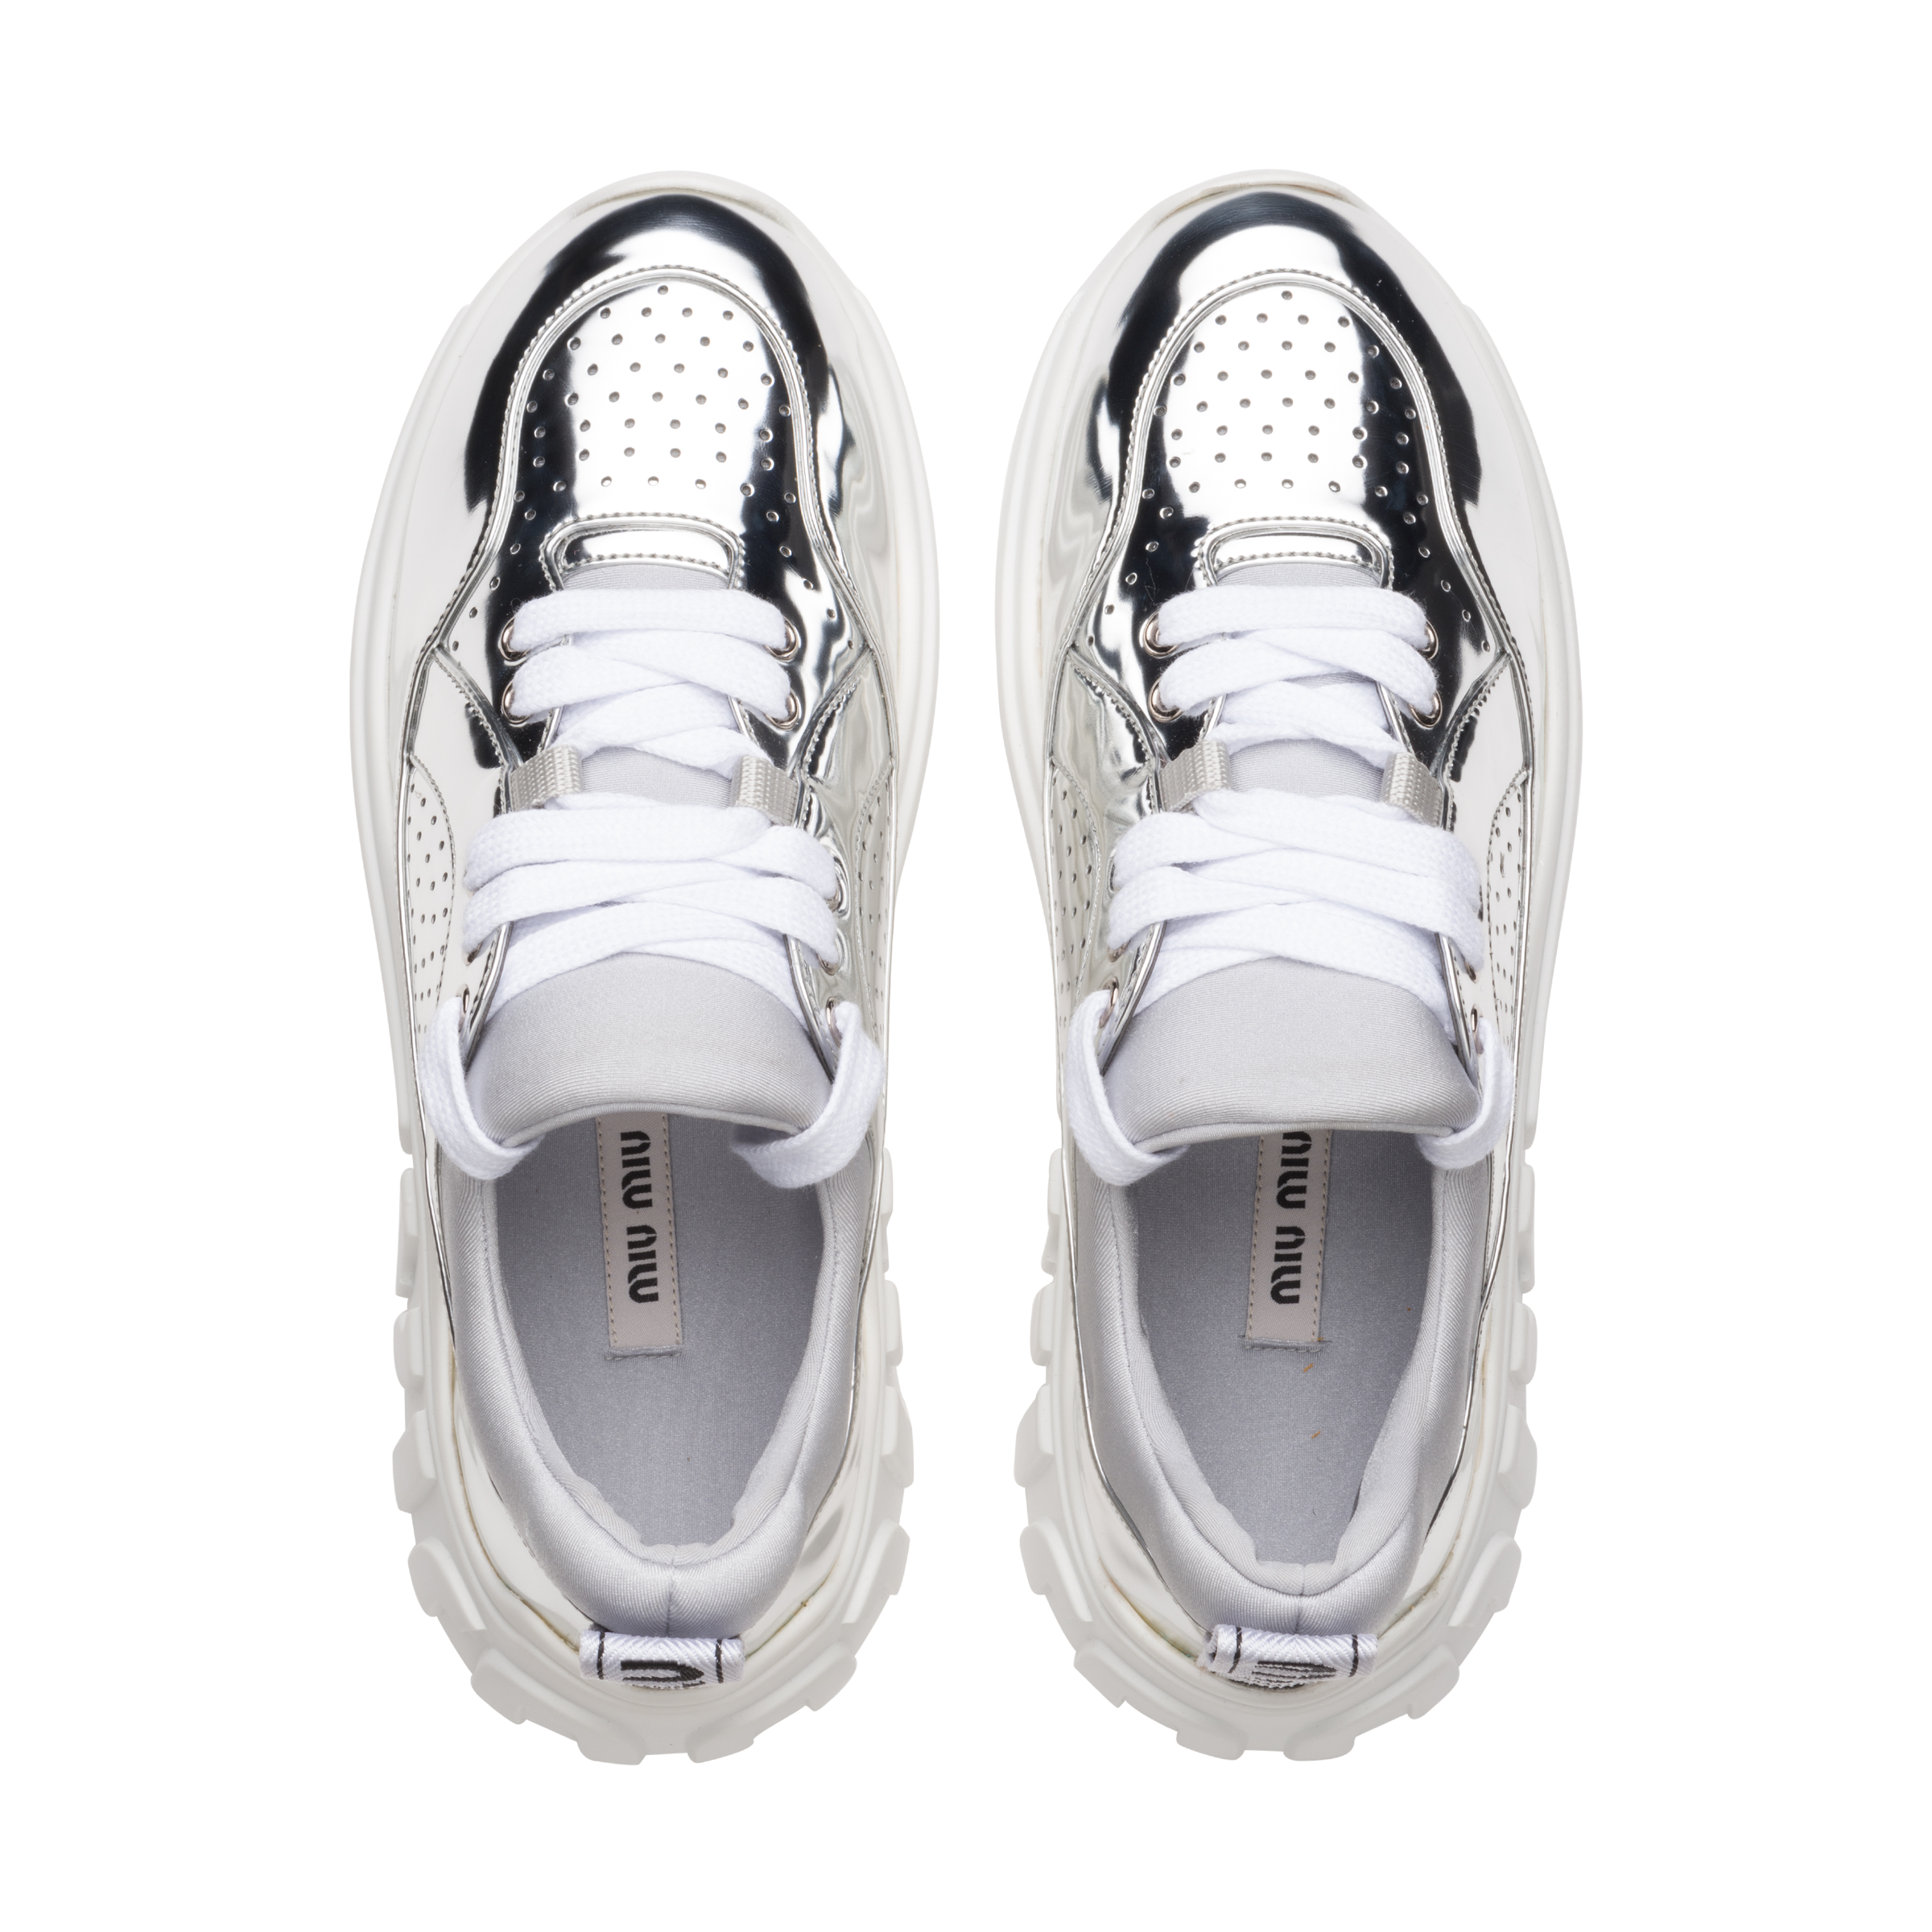 Funktionsgewebe Sneakers Run Miu Funktionsgewebe Miu Metall Run Metall Sneakers srthQodxCB